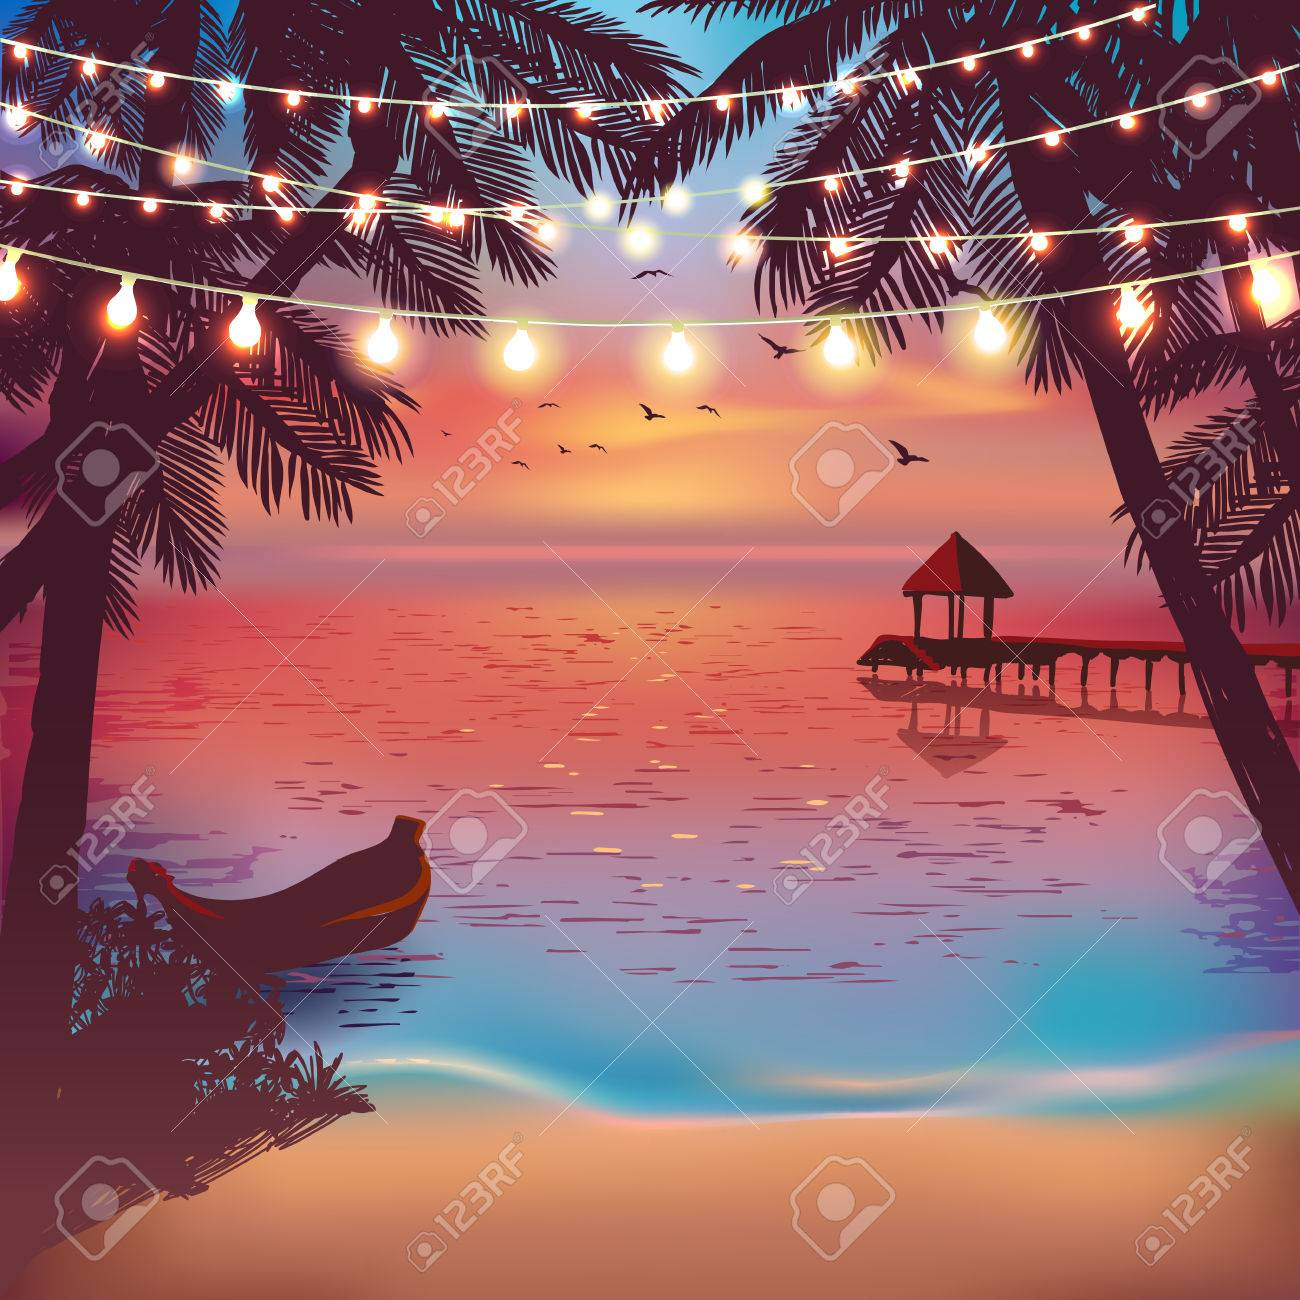 Hanging decorative holiday lights for a beach party. Inspiration card for wedding, date, birthday. Beach party invitation. Travel poster - 60981472